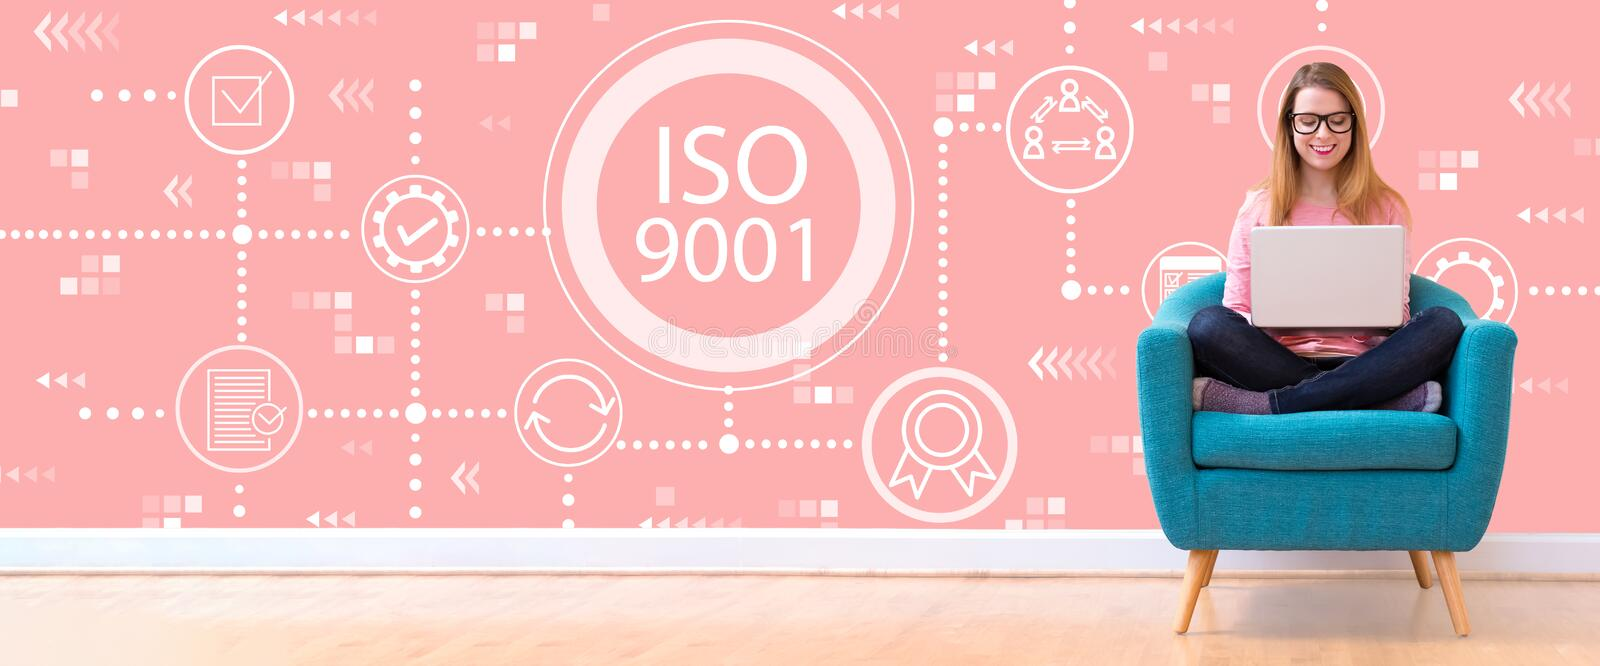 ISO 9001 with woman using a laptop royalty free stock photography